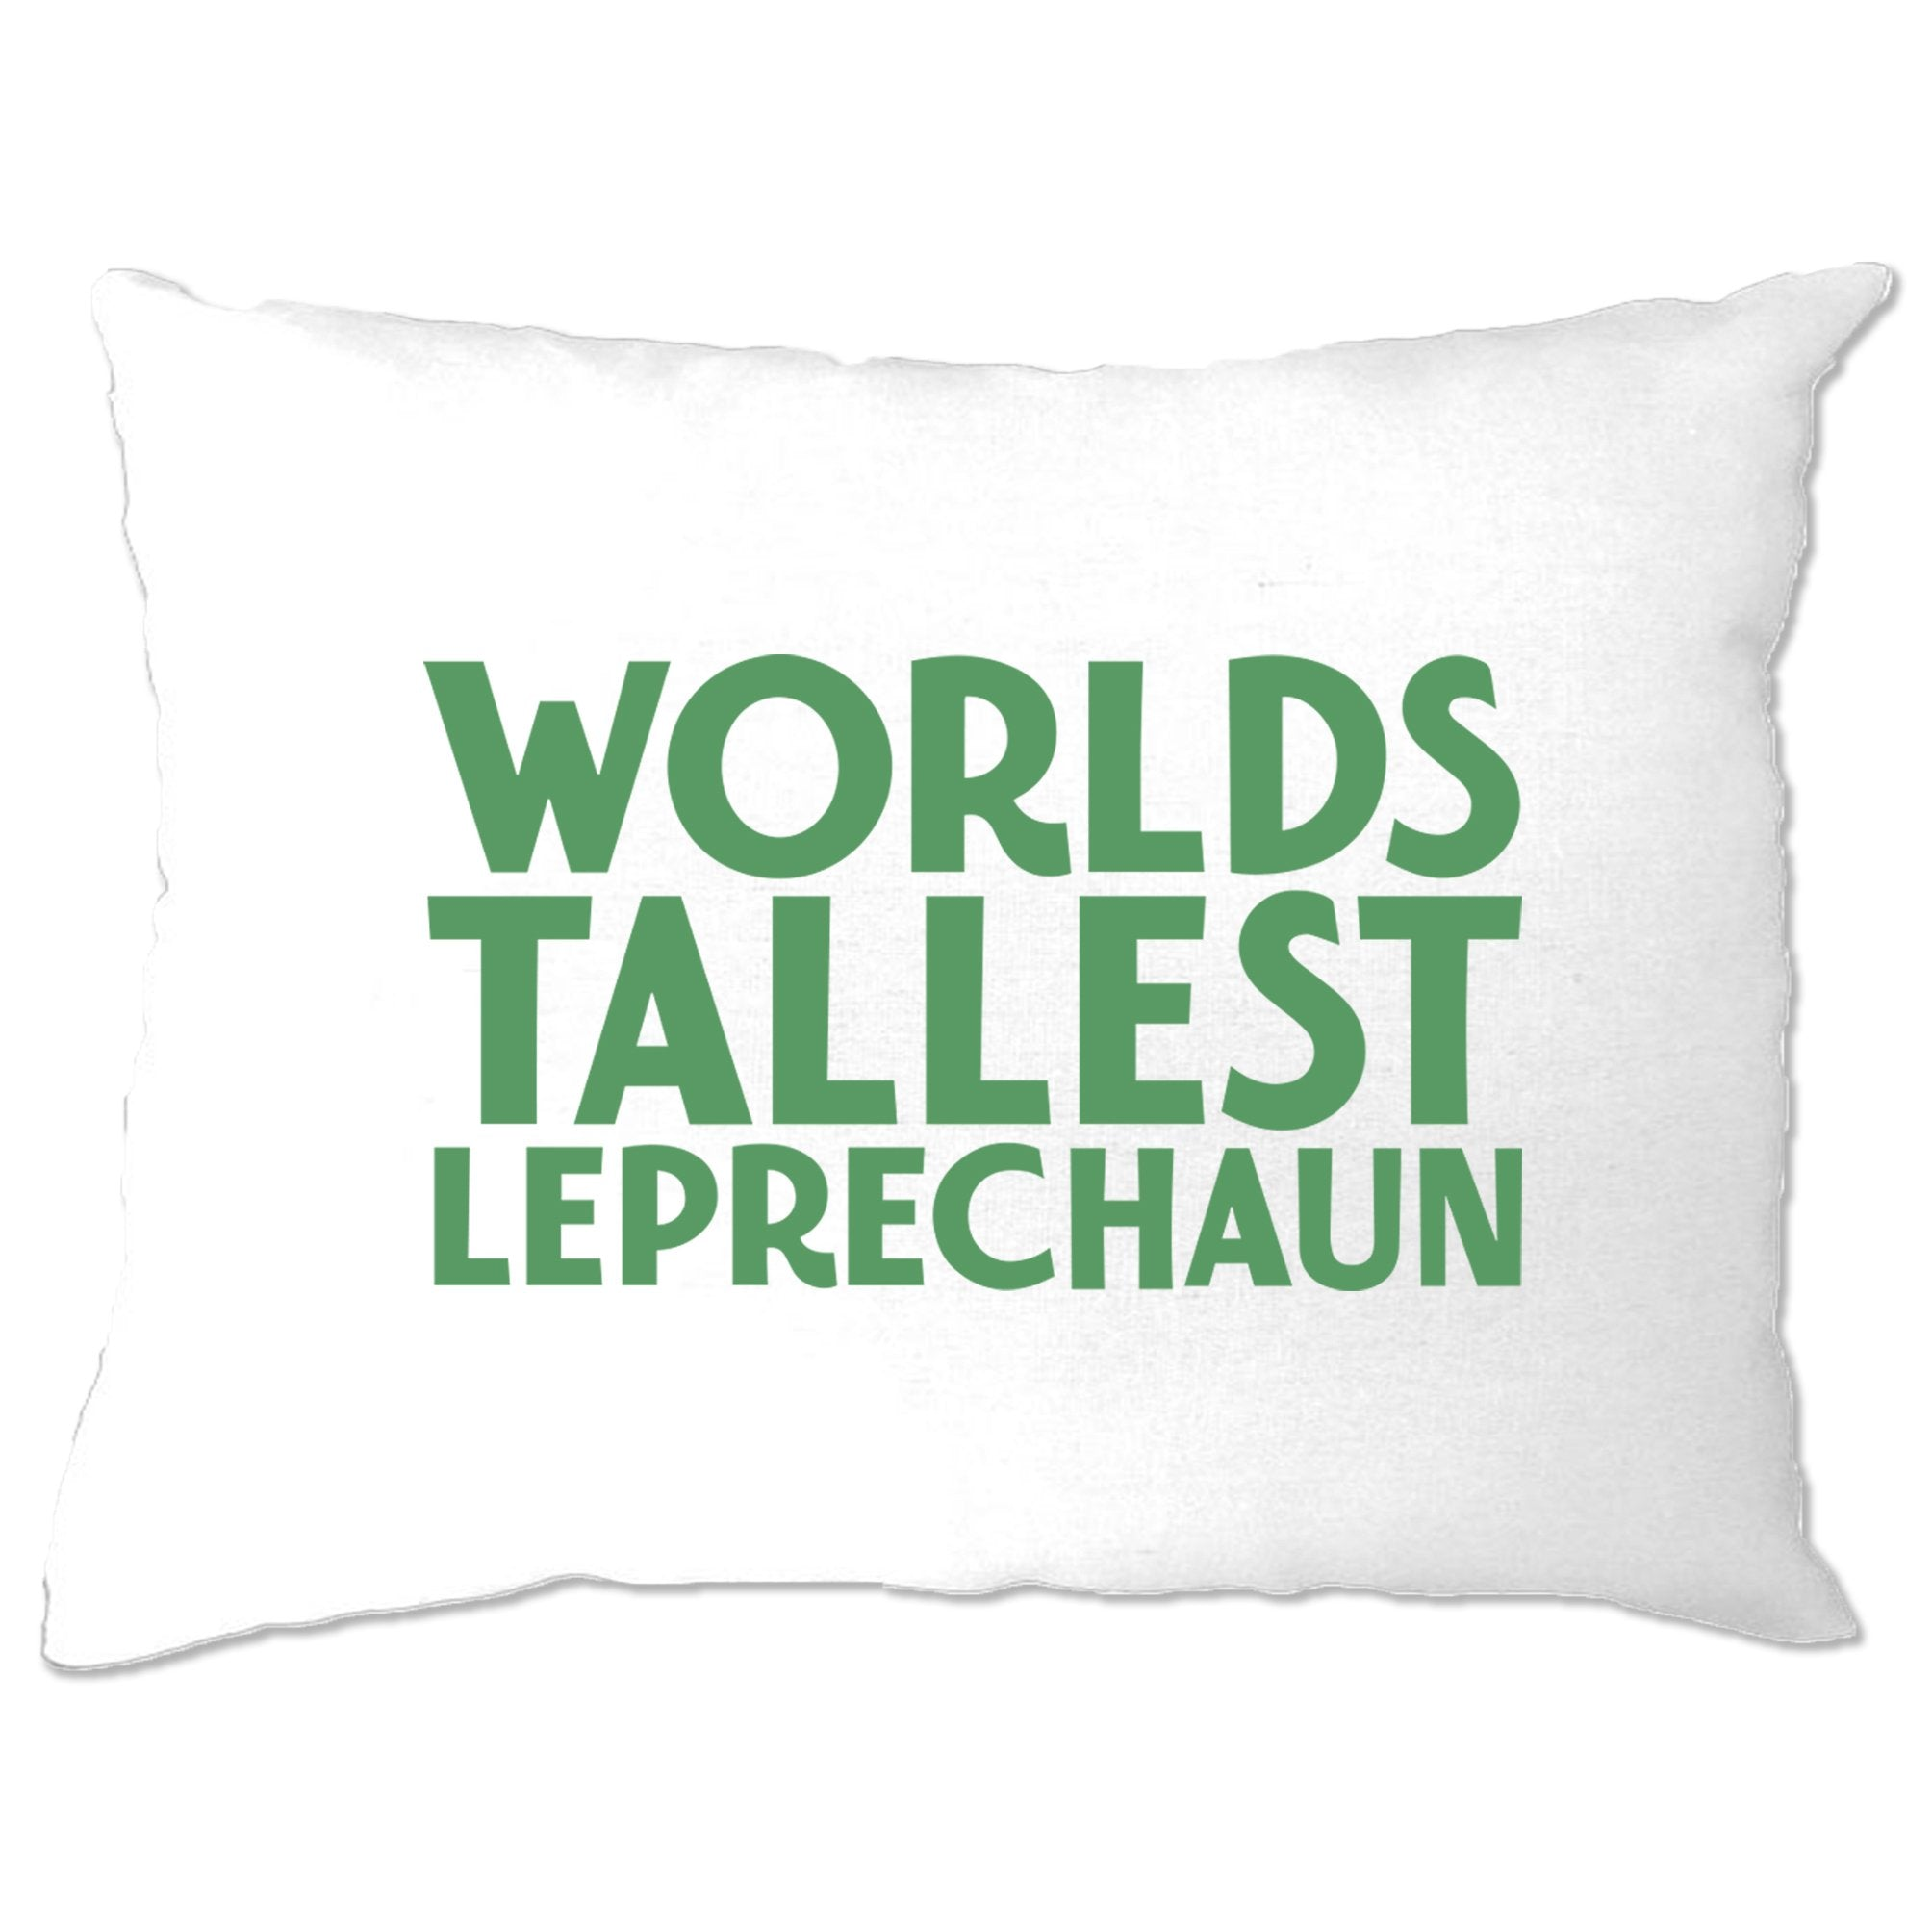 St Patricks Day Joke Pillow Case Worlds Tallest Leprechaun